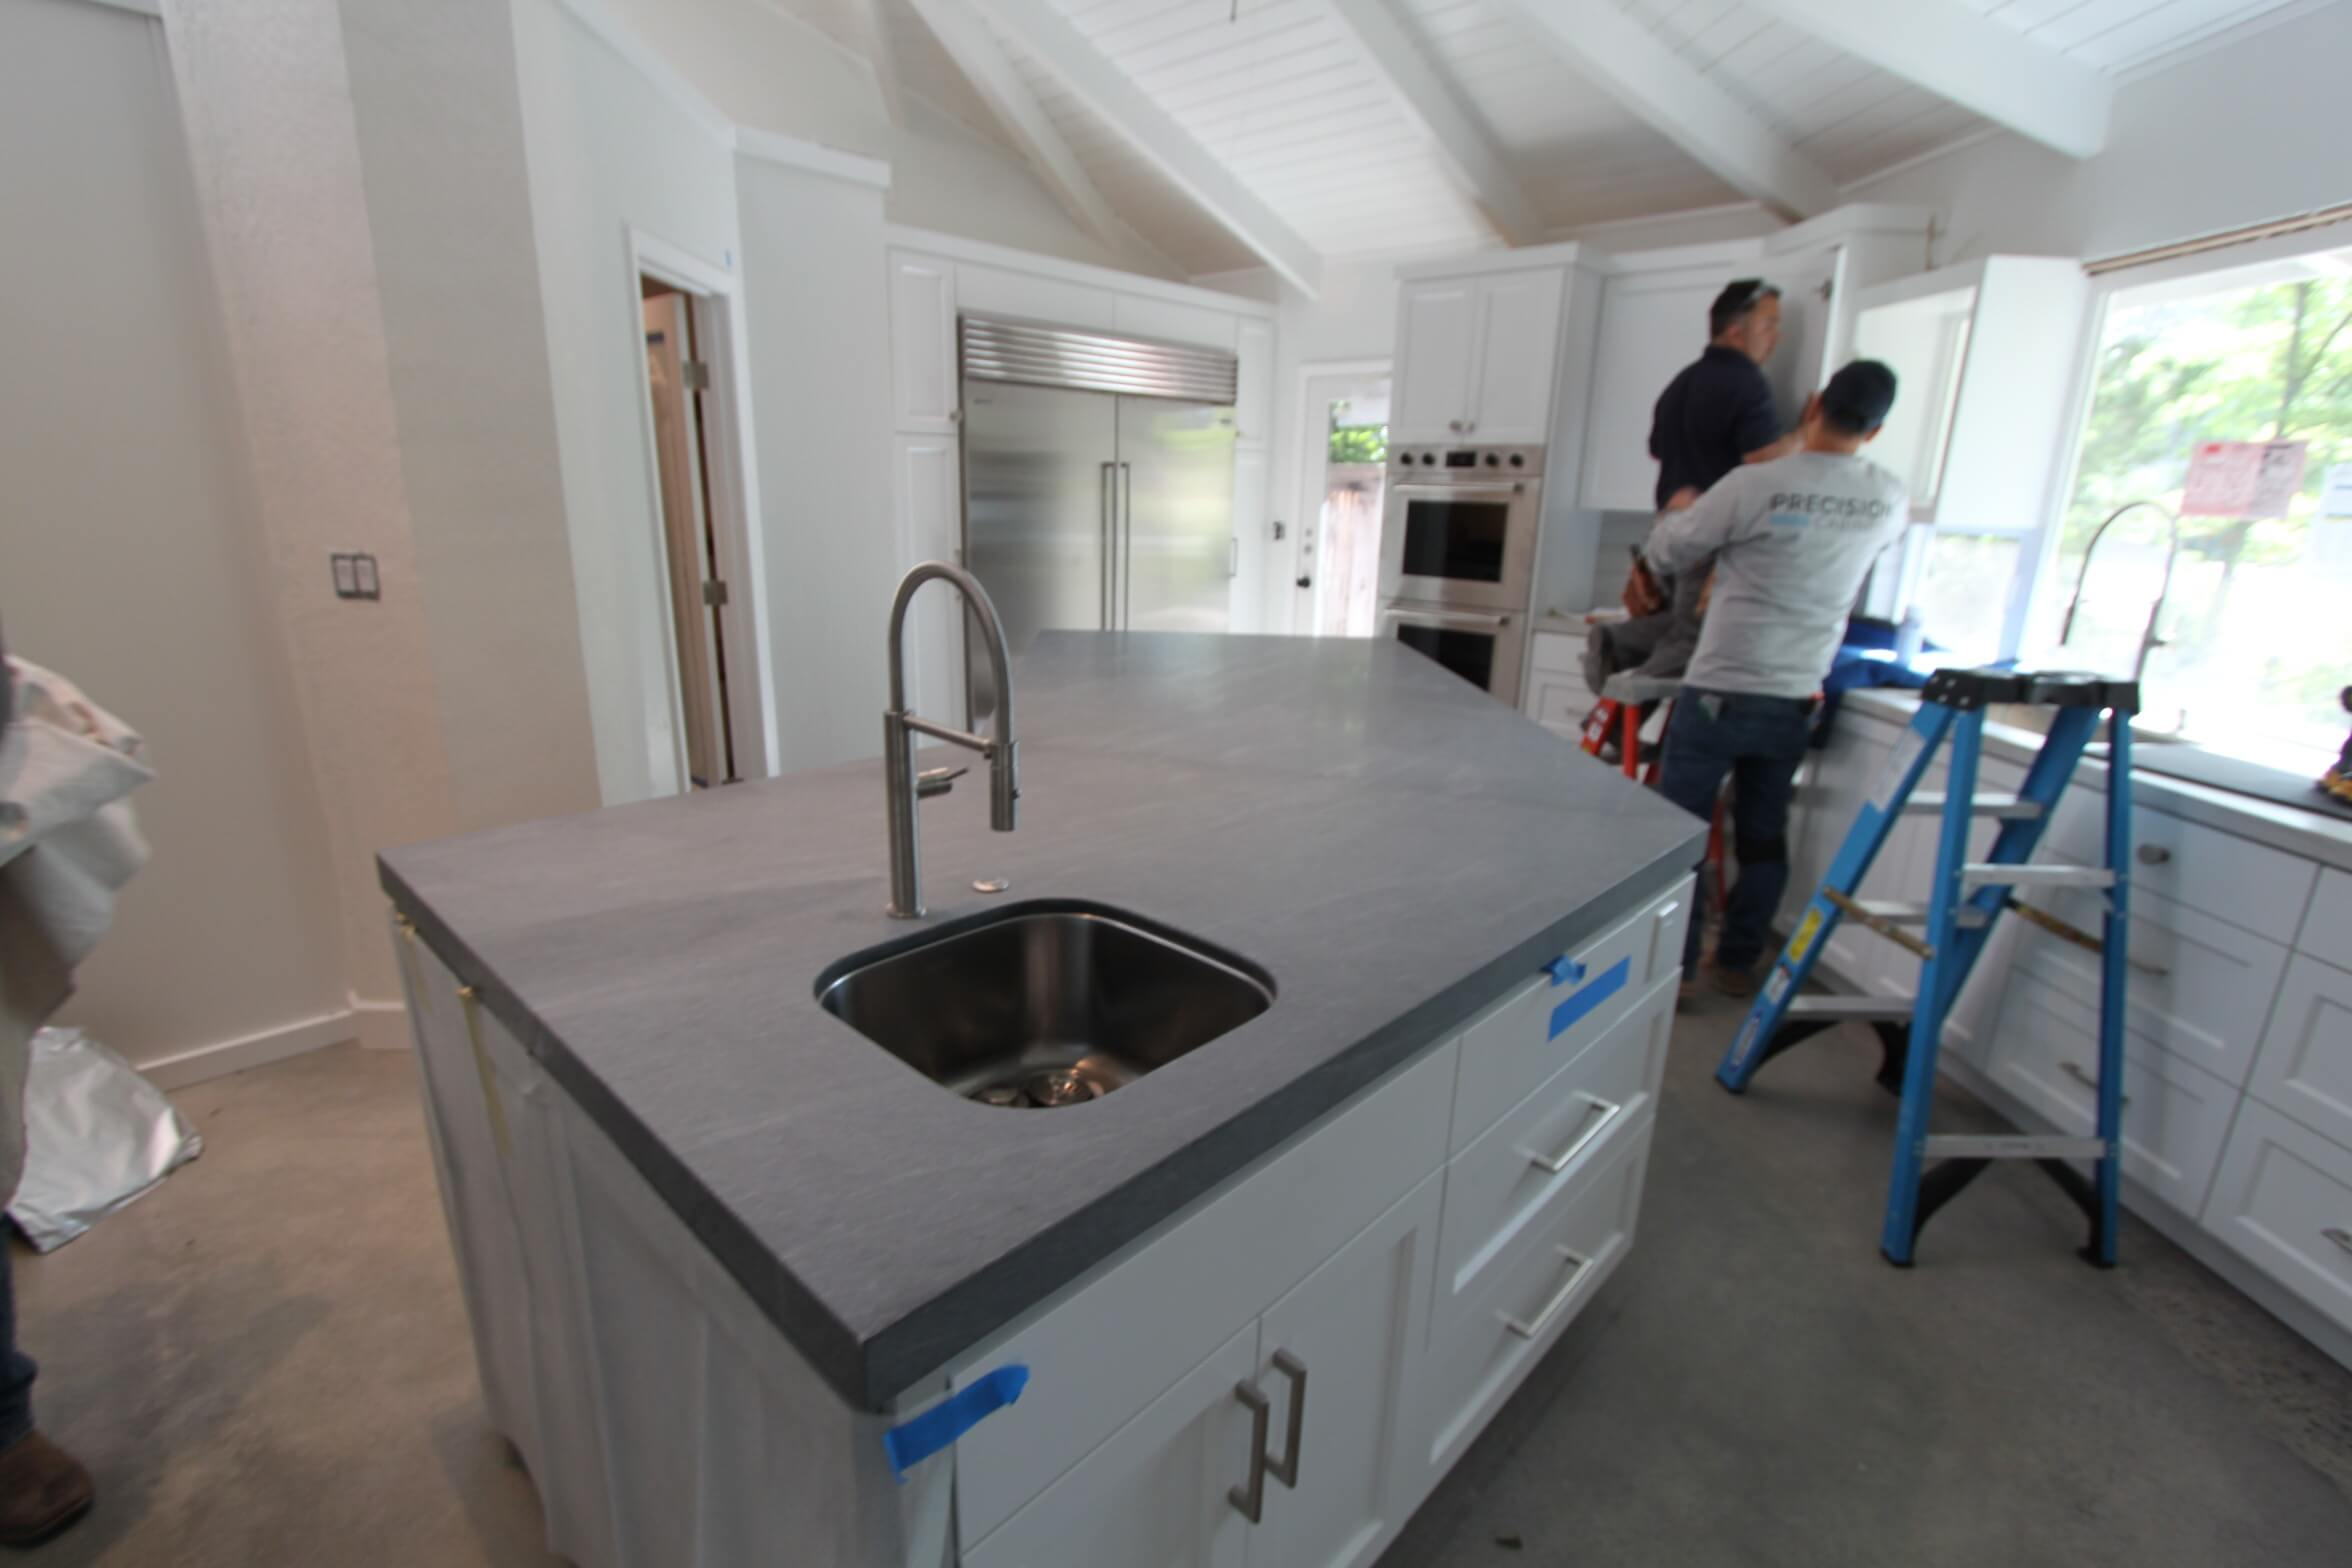 alamo_island-sink_kitchen.jpg